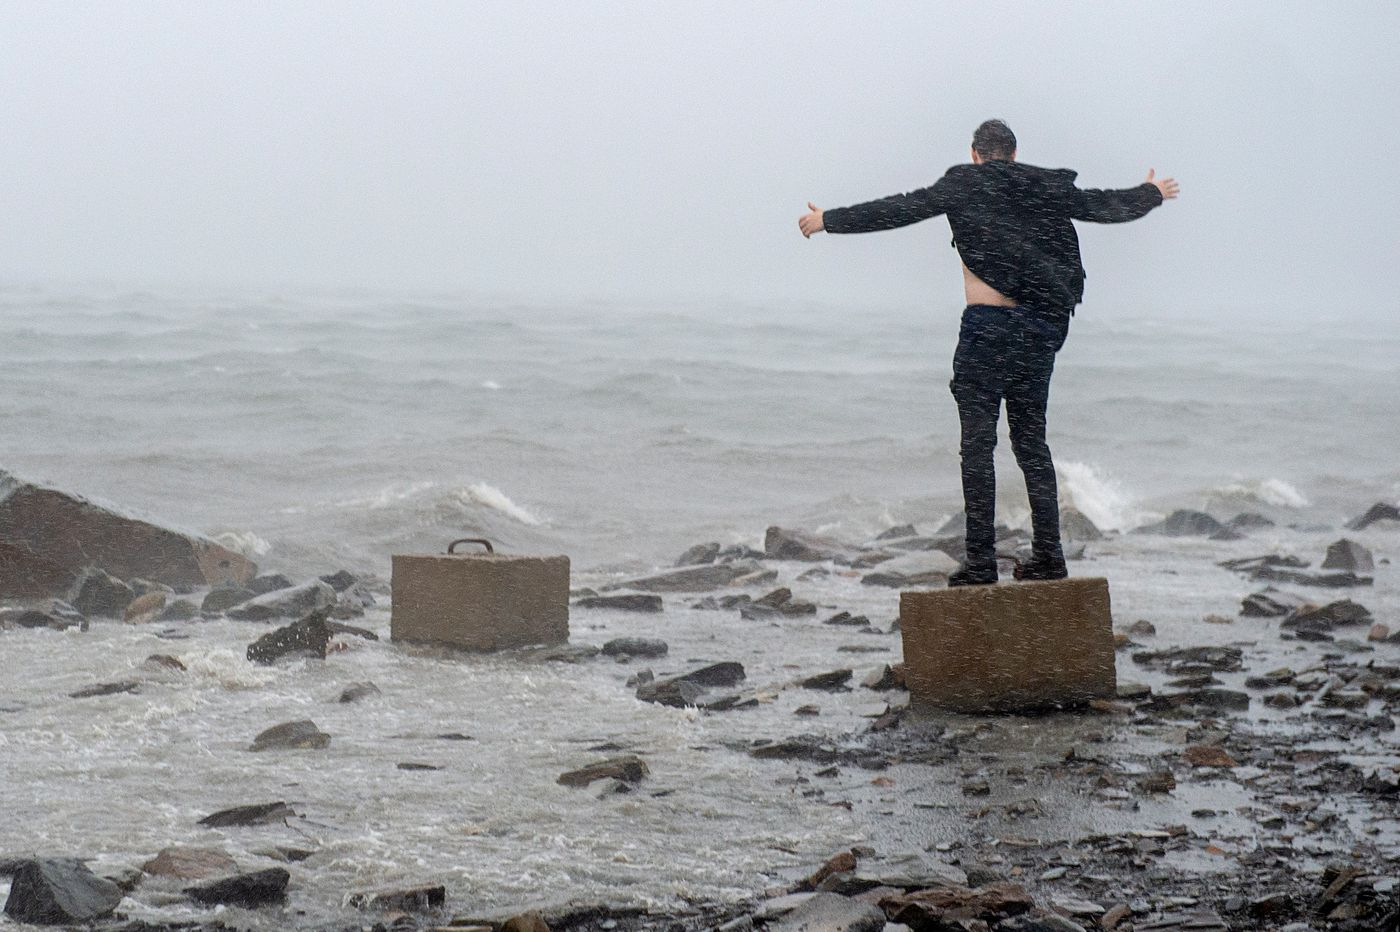 Dorian topples crane, knocks out power in eastern Canada